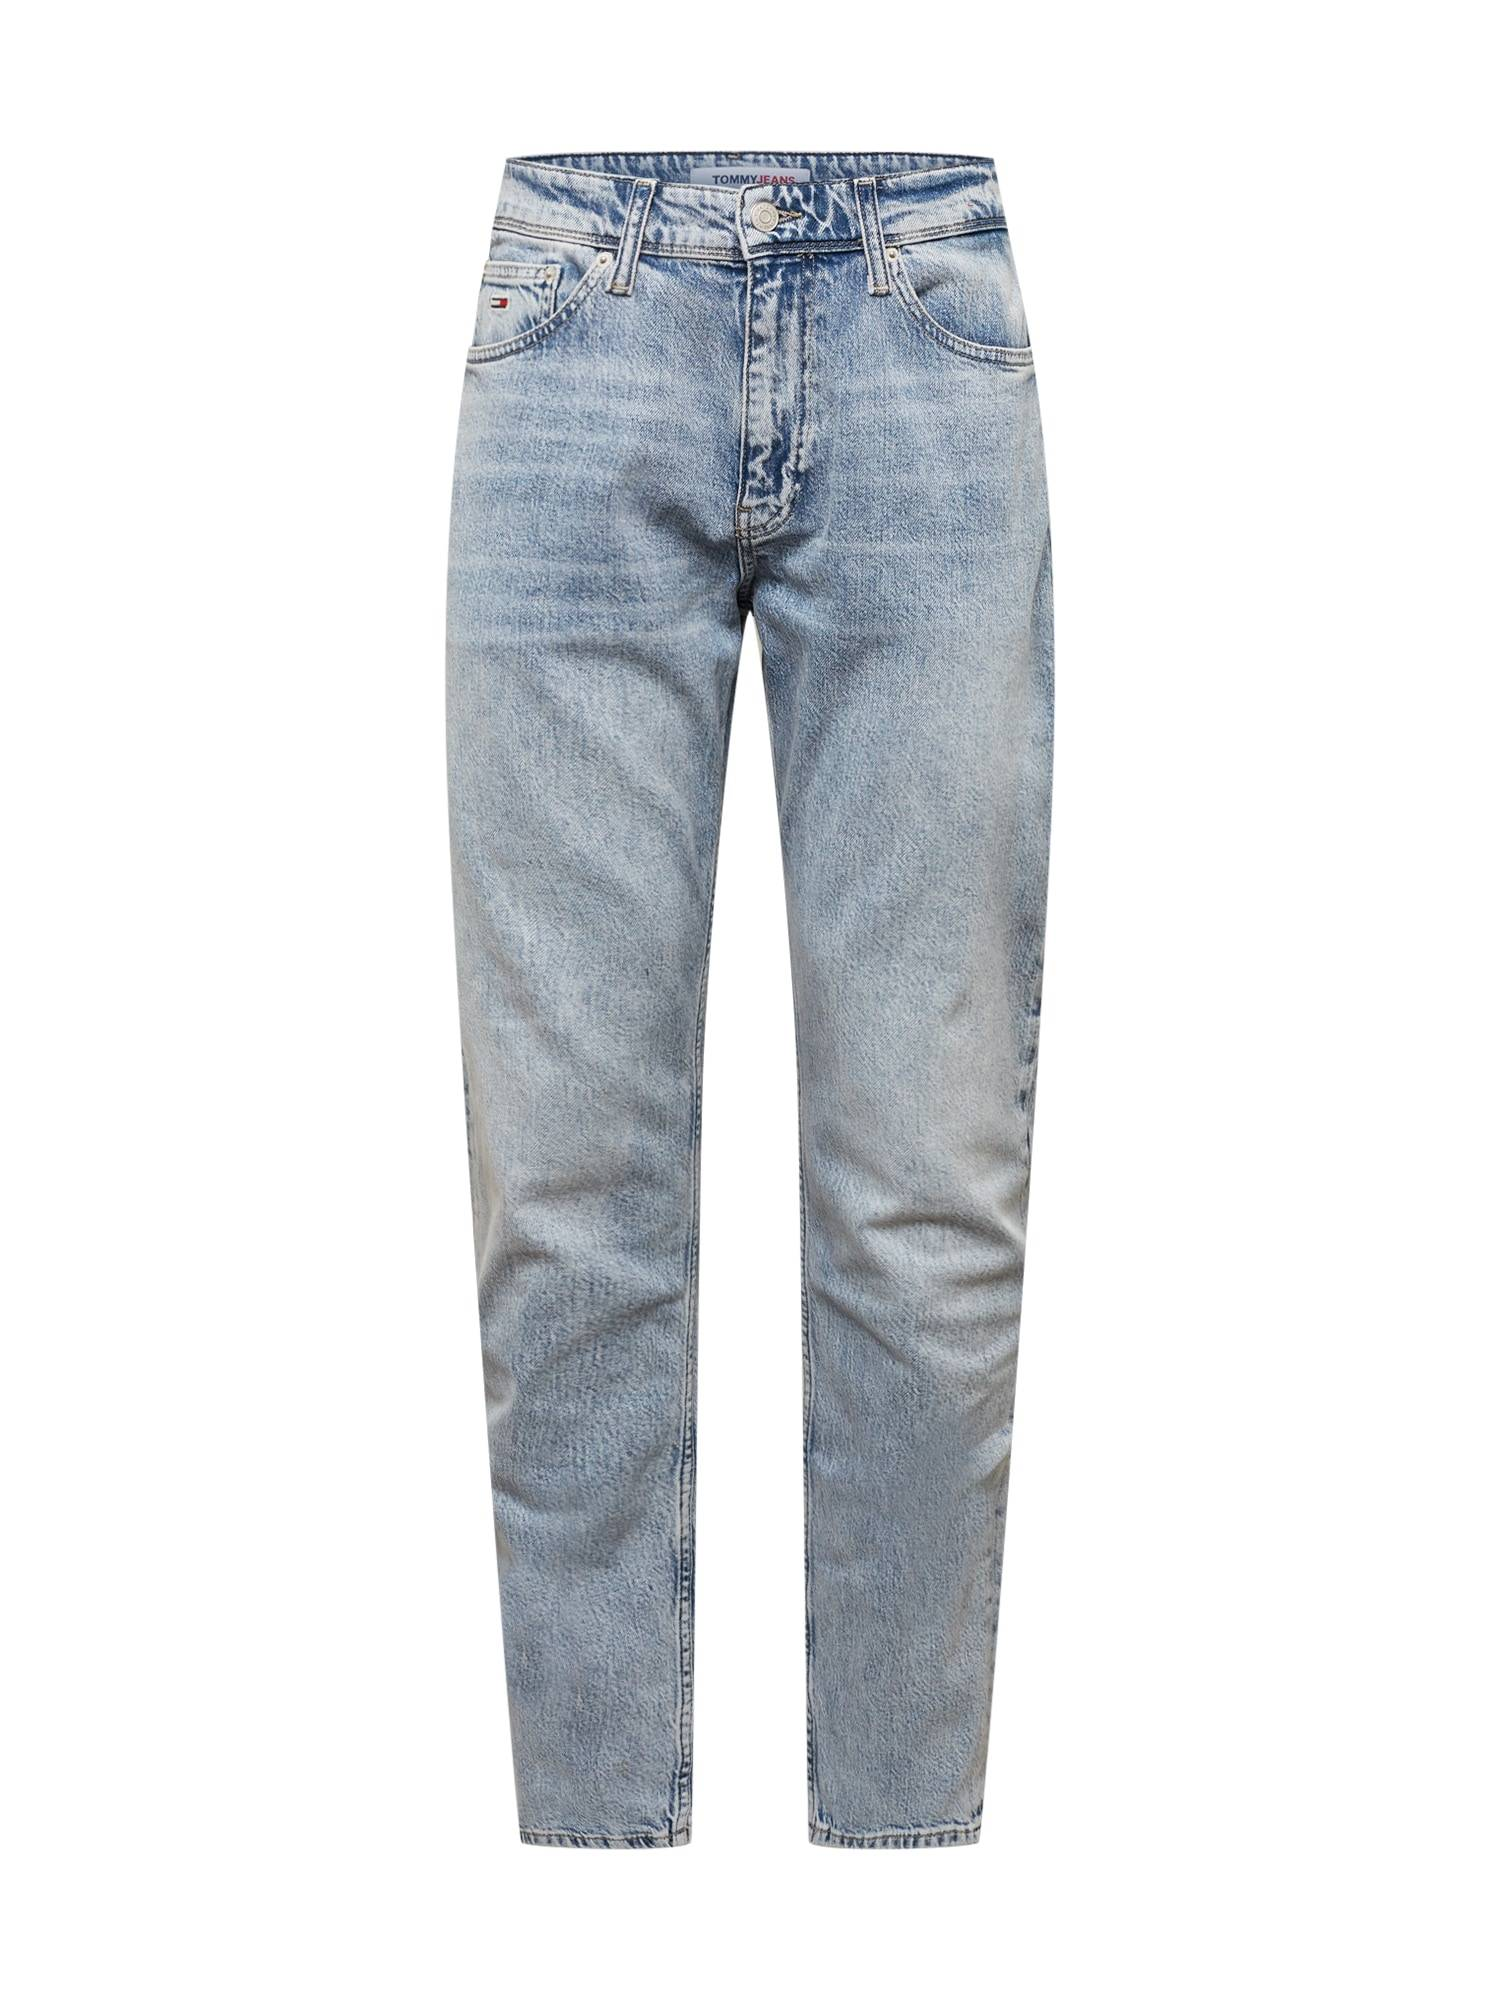 Tommy Jeans Jean 'Ethan'  - Bleu - Taille: 34 - male